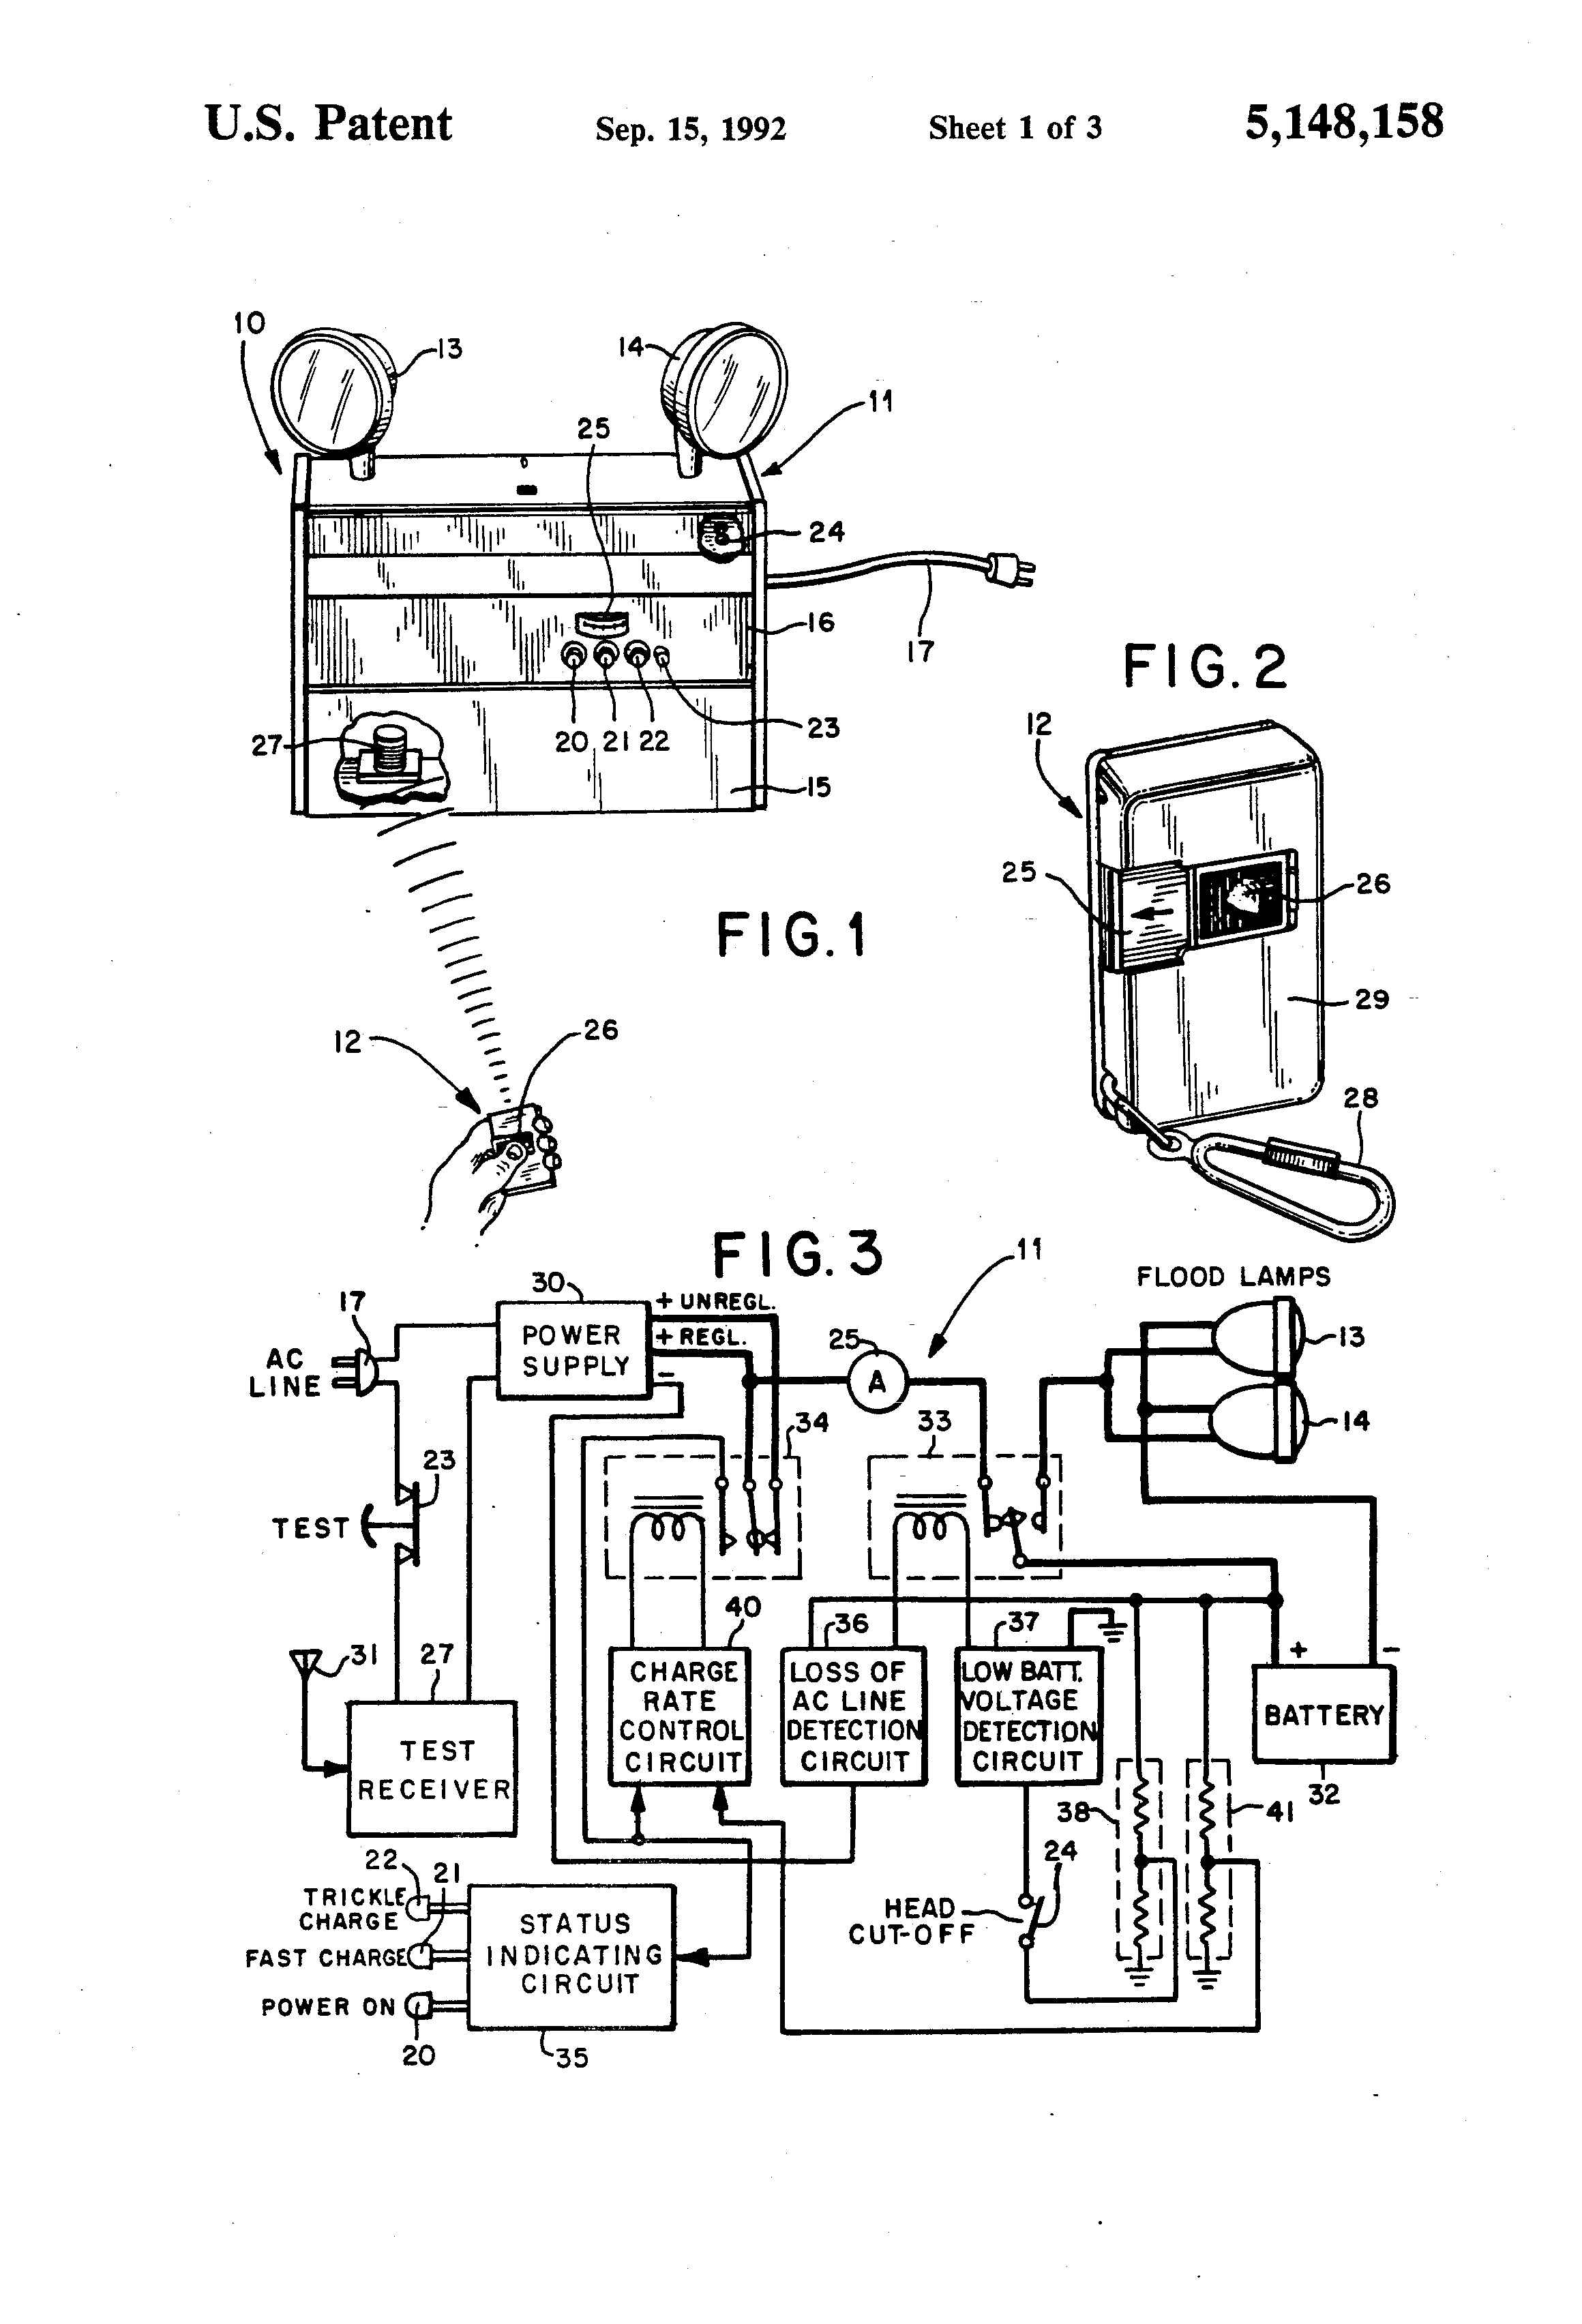 wiring a sign patent us5148158 - emergency lighting unit having remote ...